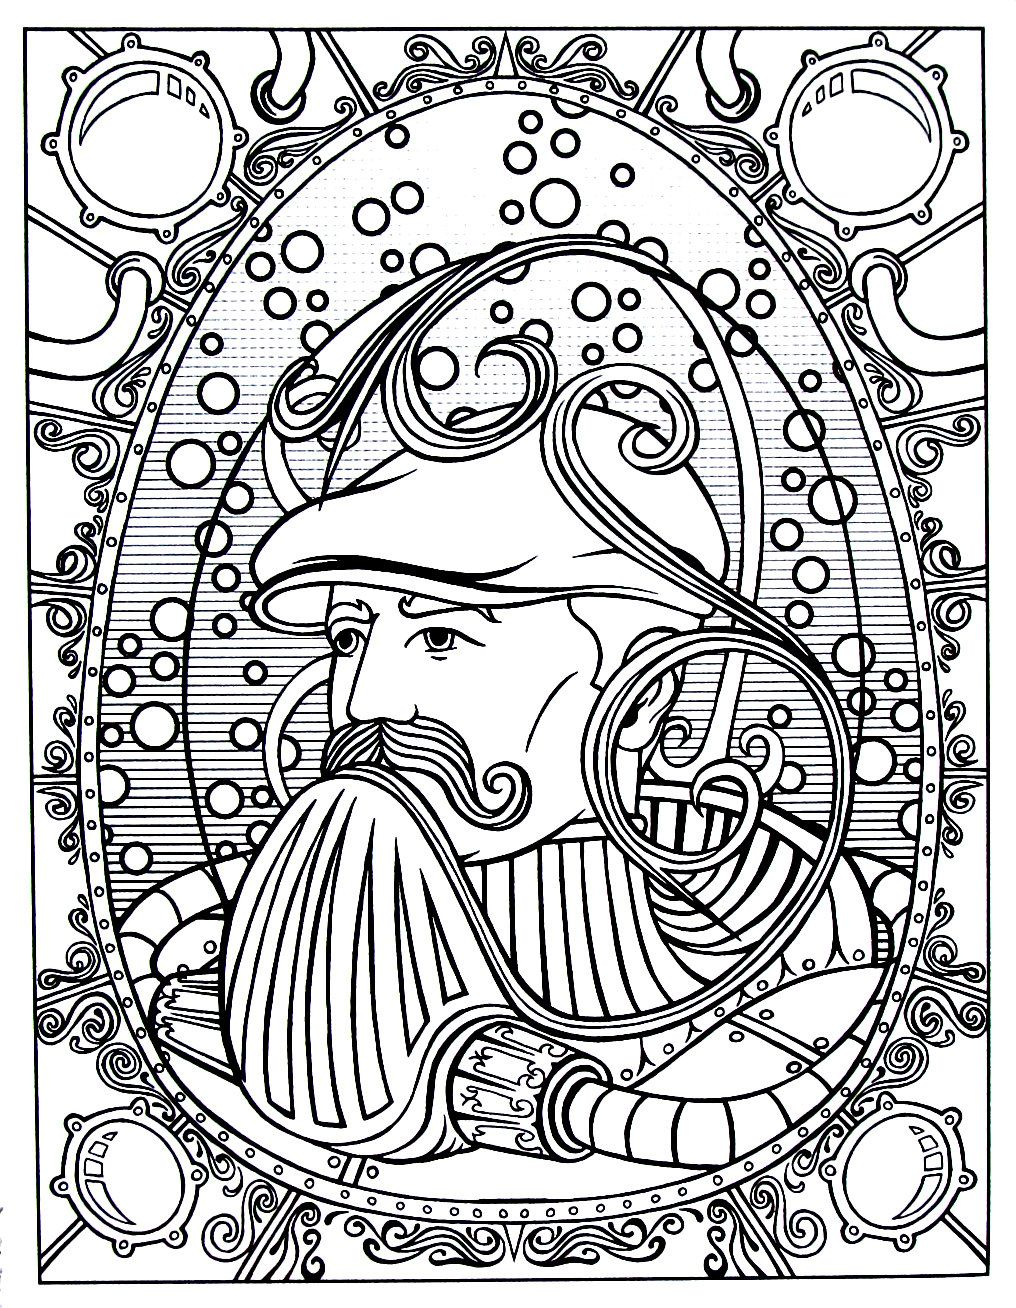 Steampunk mask contraption printable coloring book page | Coloring ...